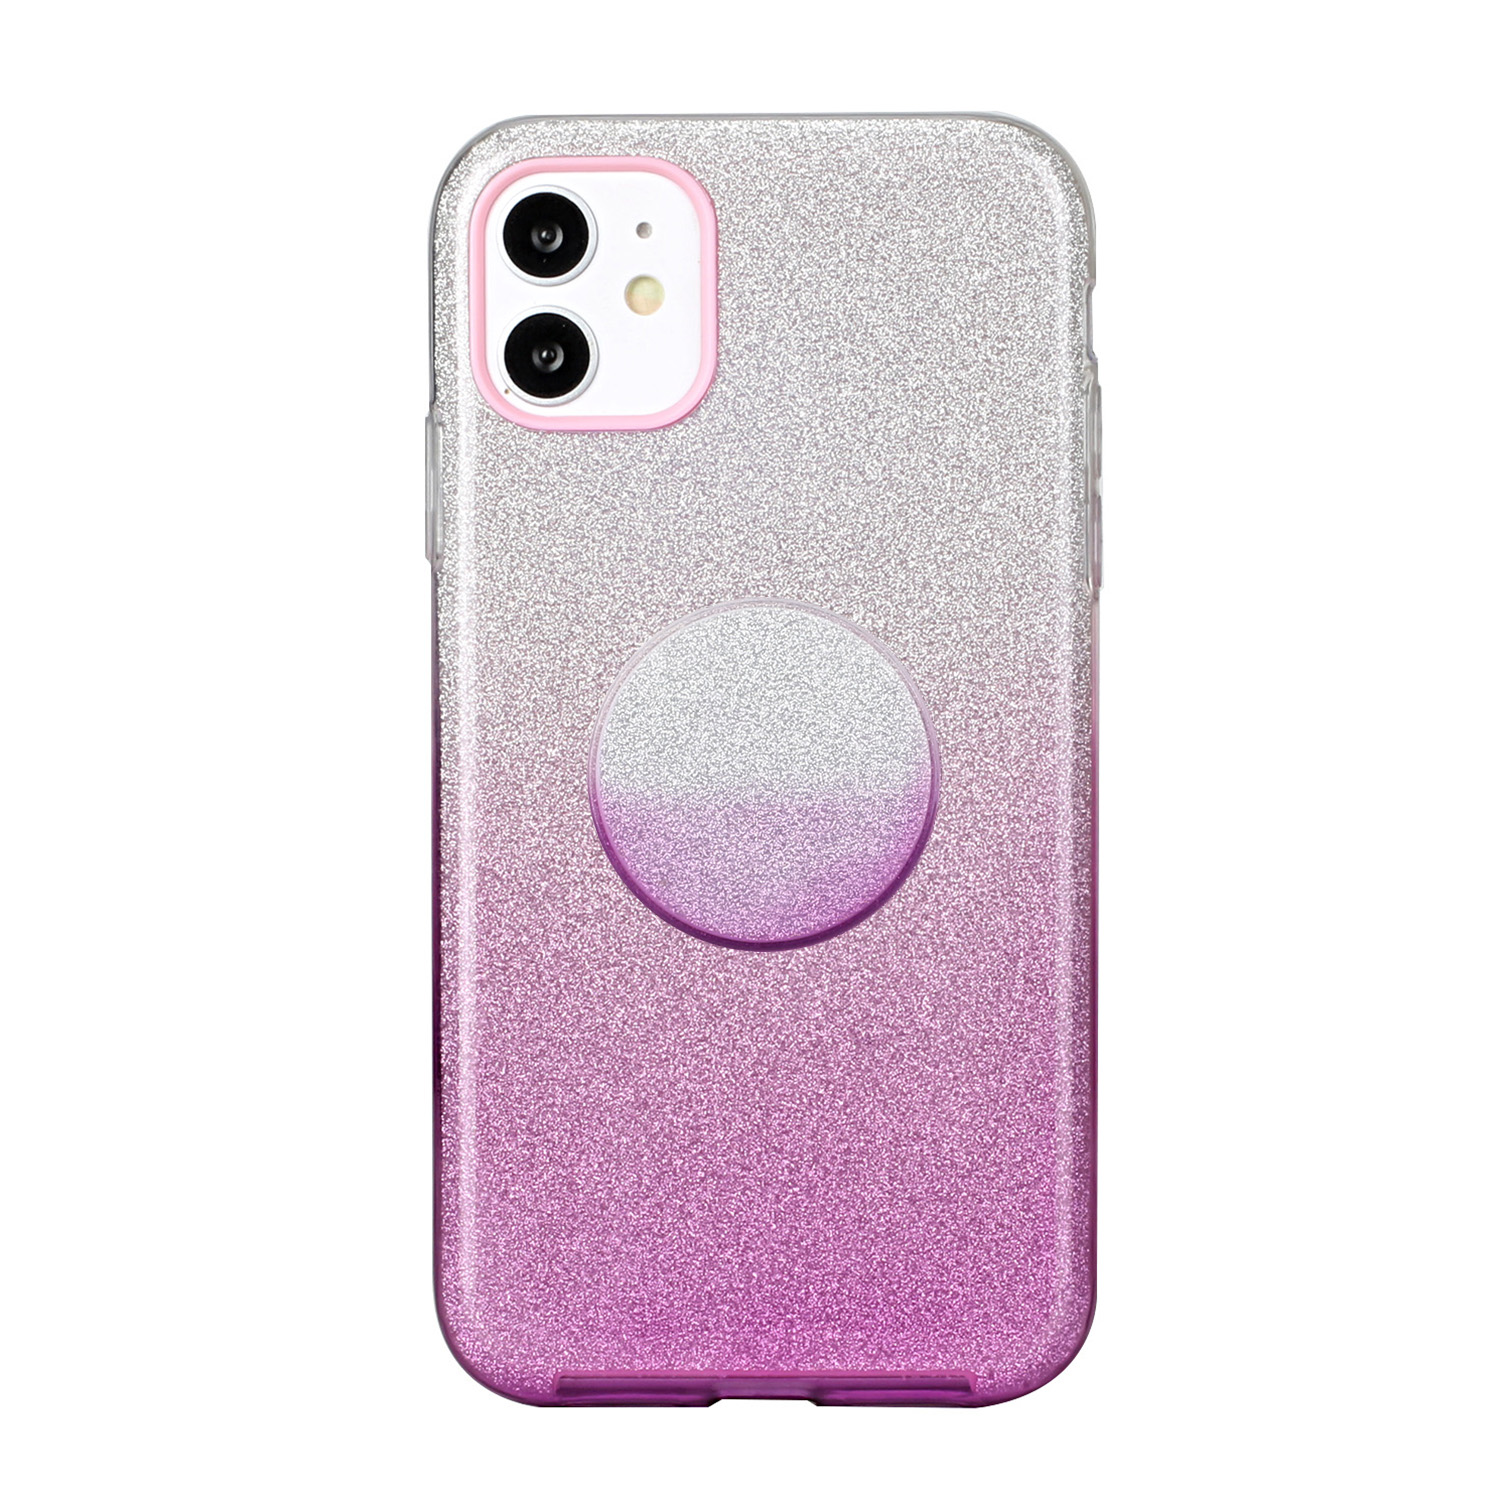 For iphone X/XS/XR/XS MAX/11/11 pro MAX Phone Case Gradient Color Glitter Powder Phone Cover with Airbag Bracket purple